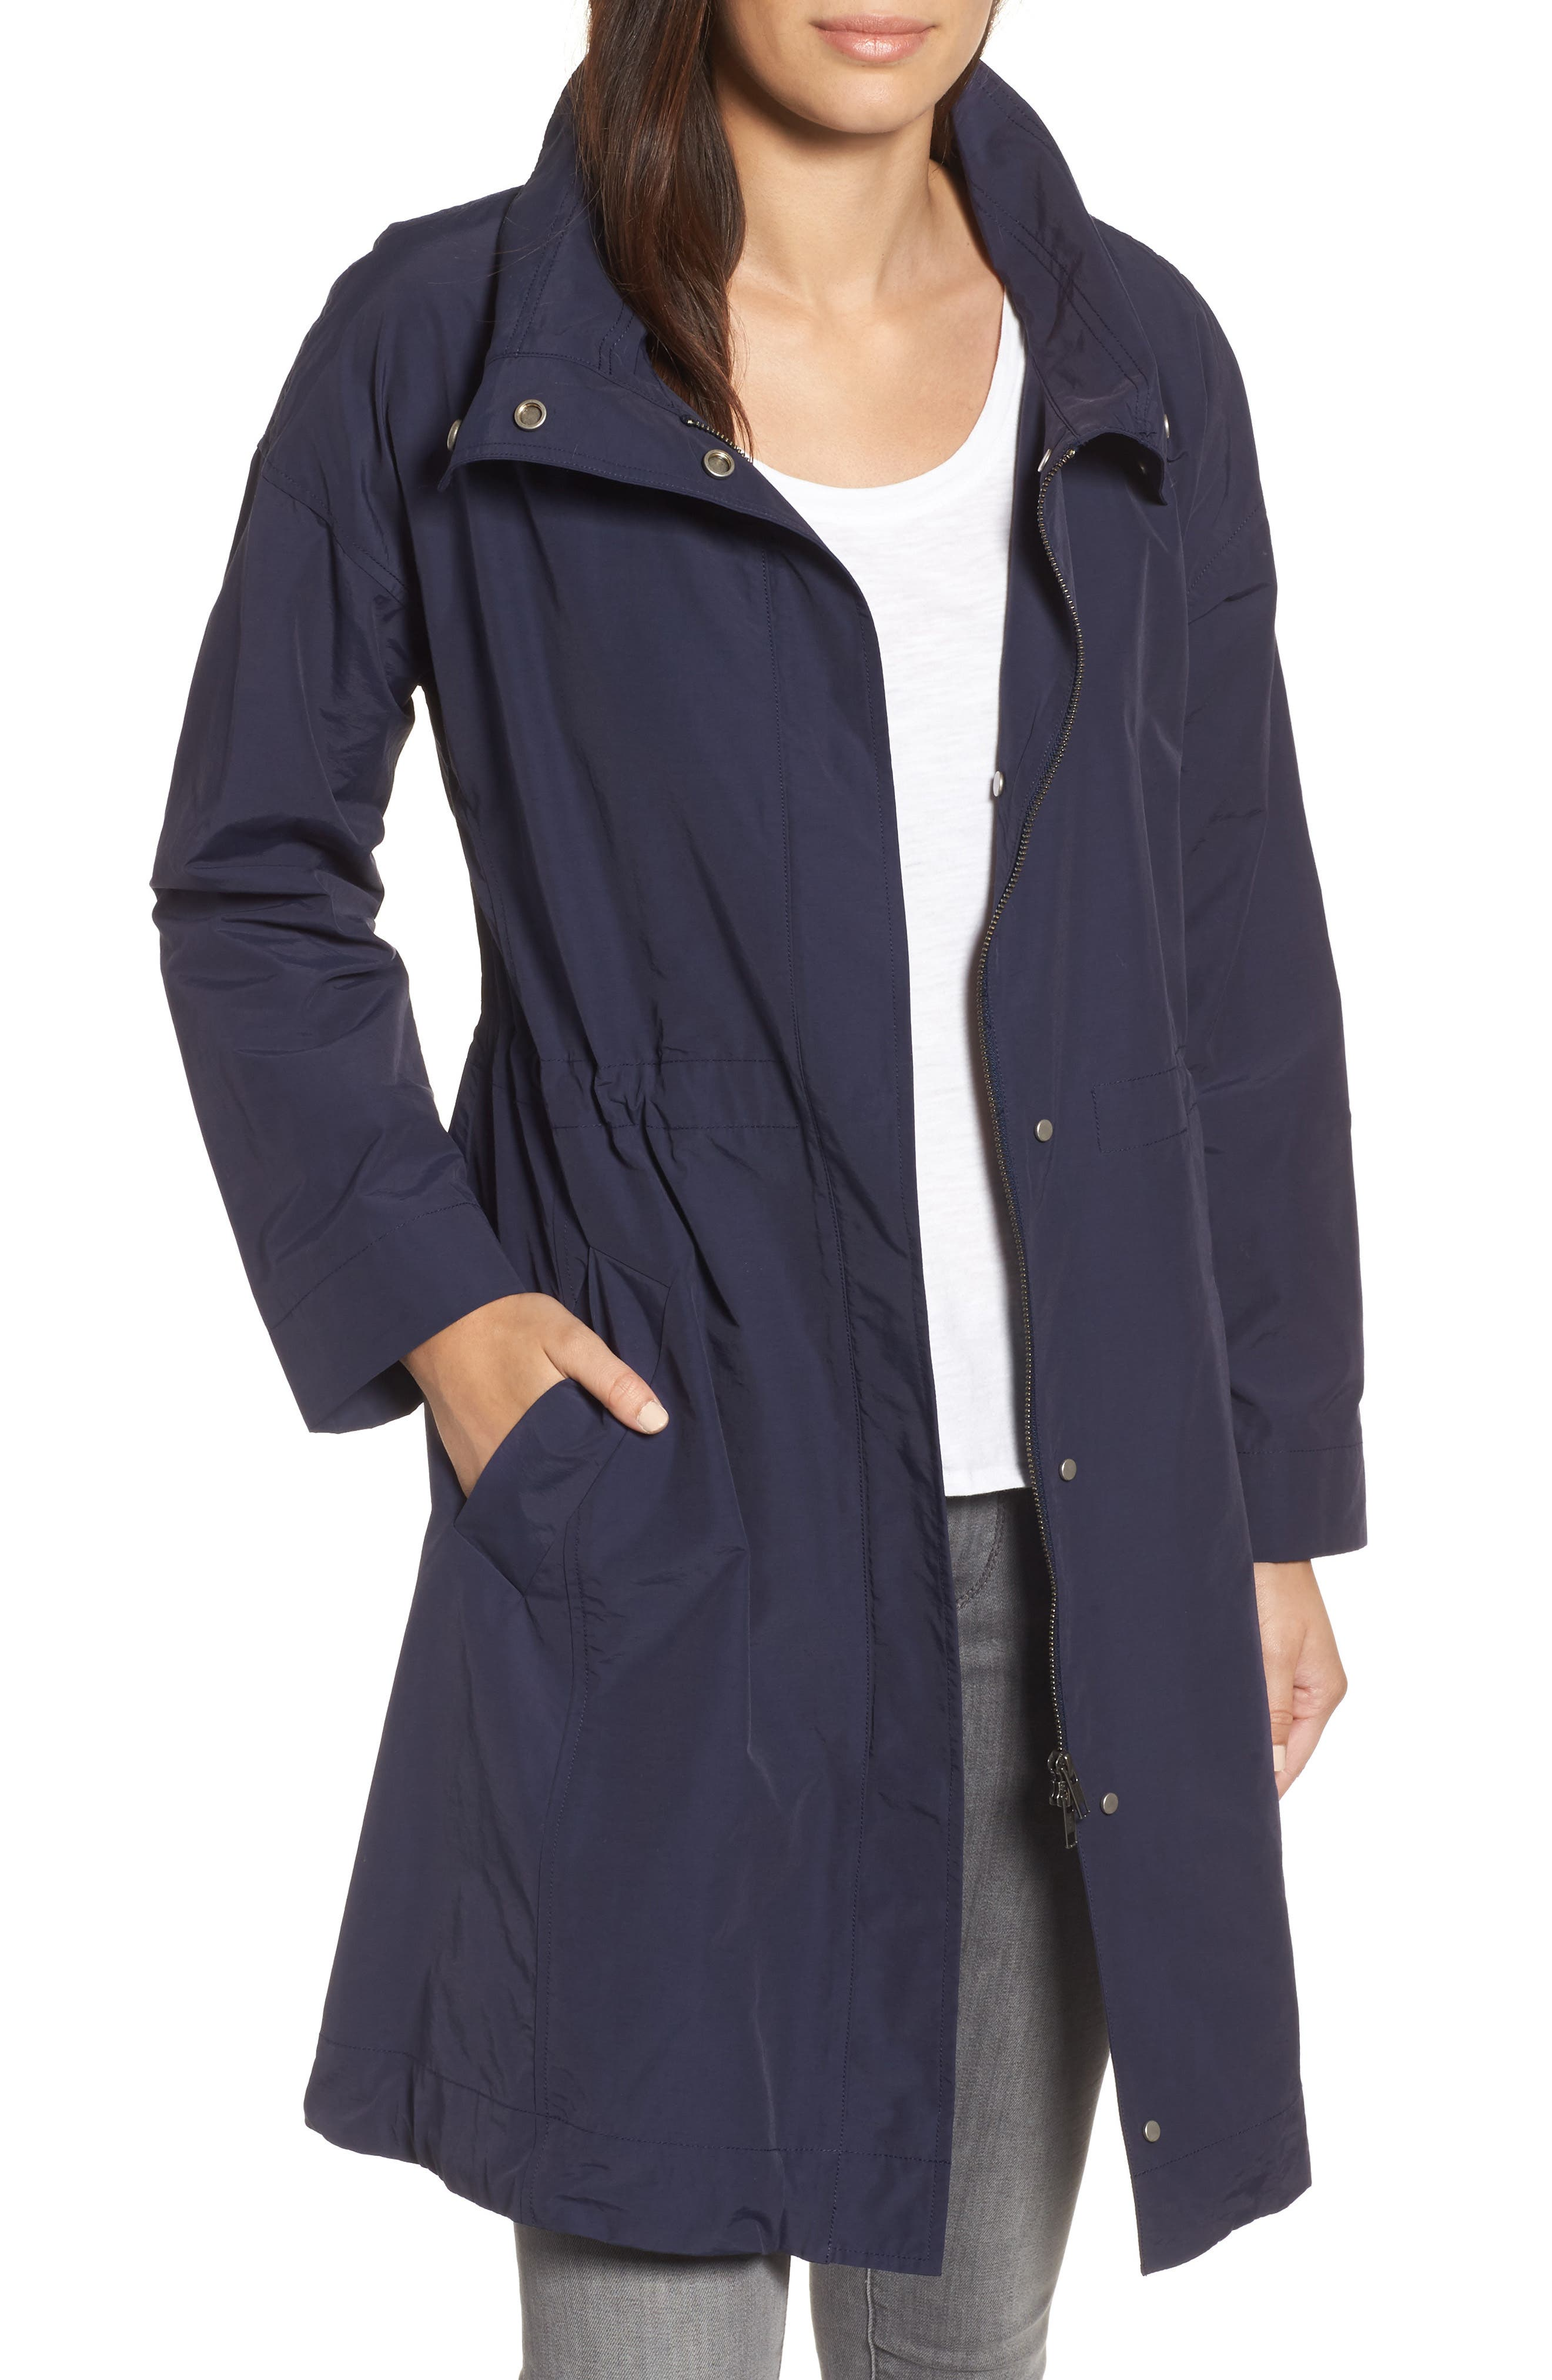 Eileen Fisher High Collar Long Jacket